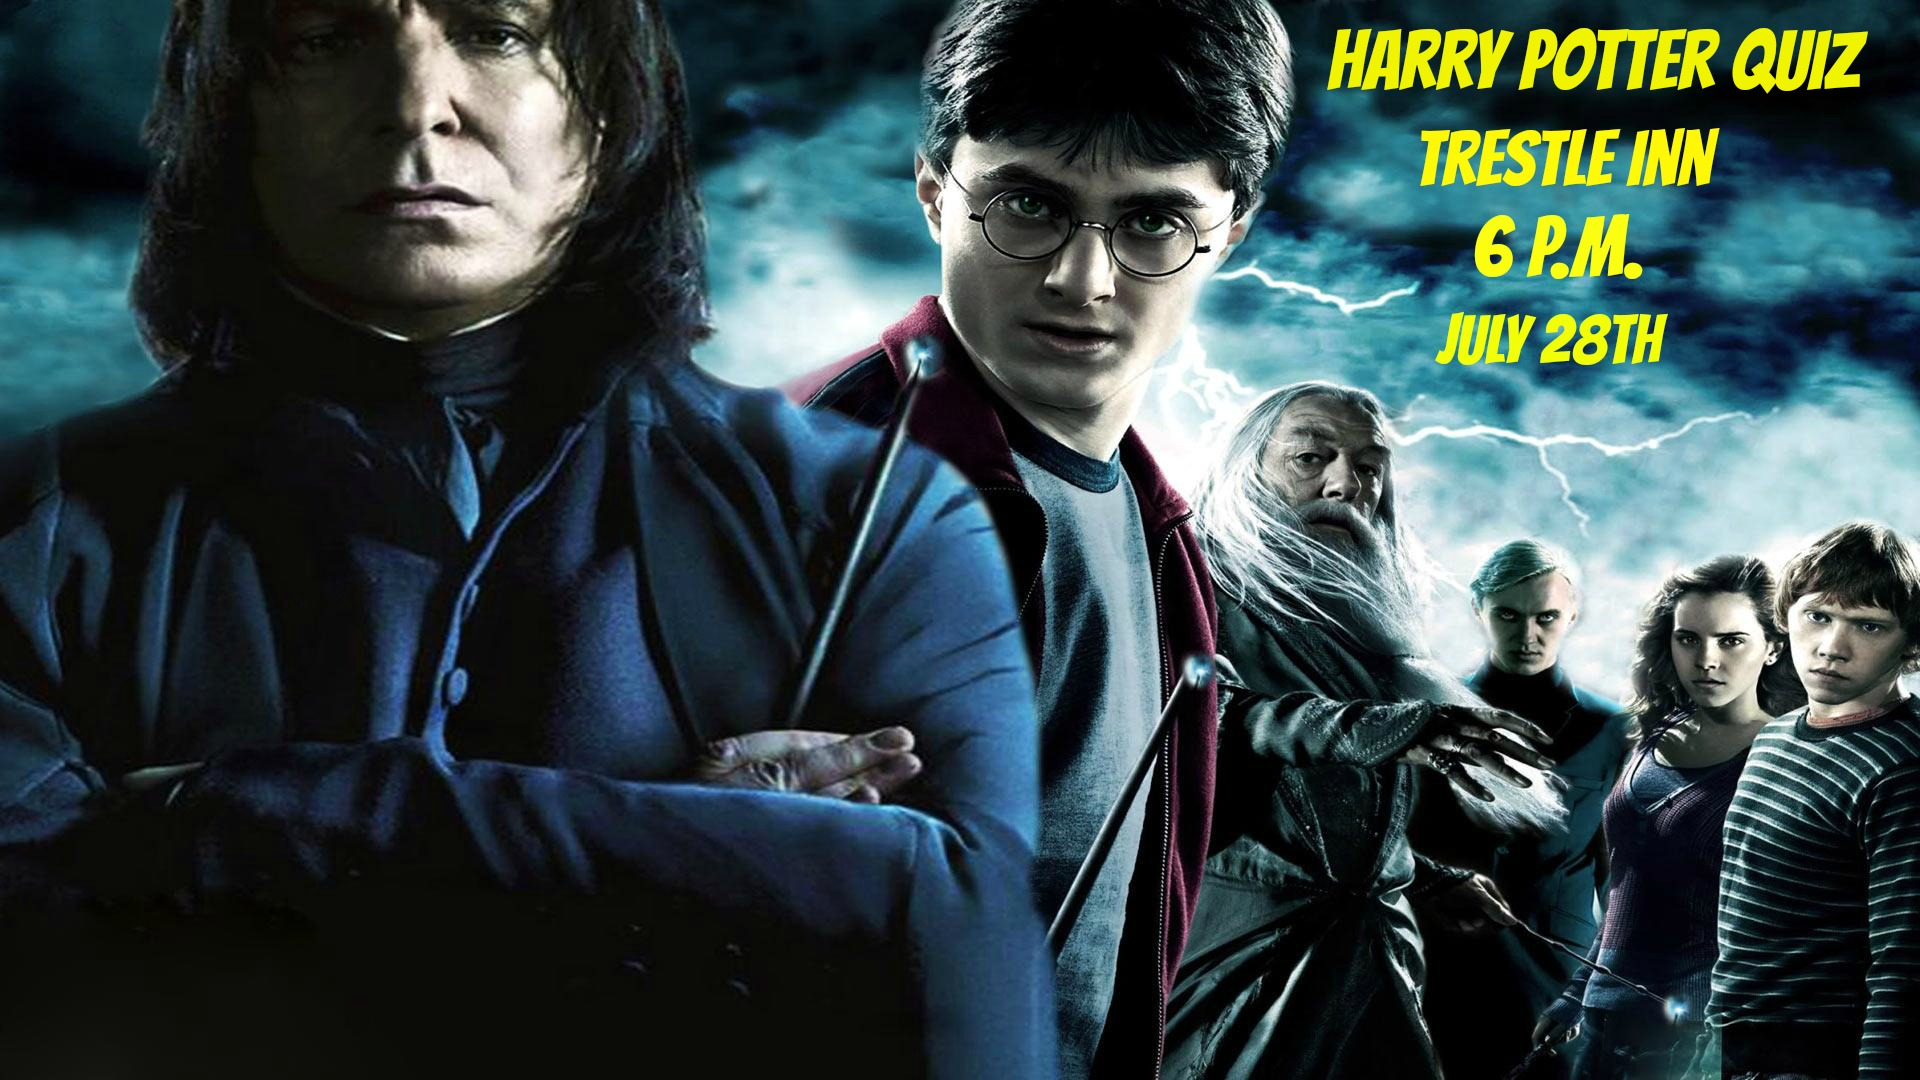 Harry Potter Quiz On July 28th At Trestle Inn